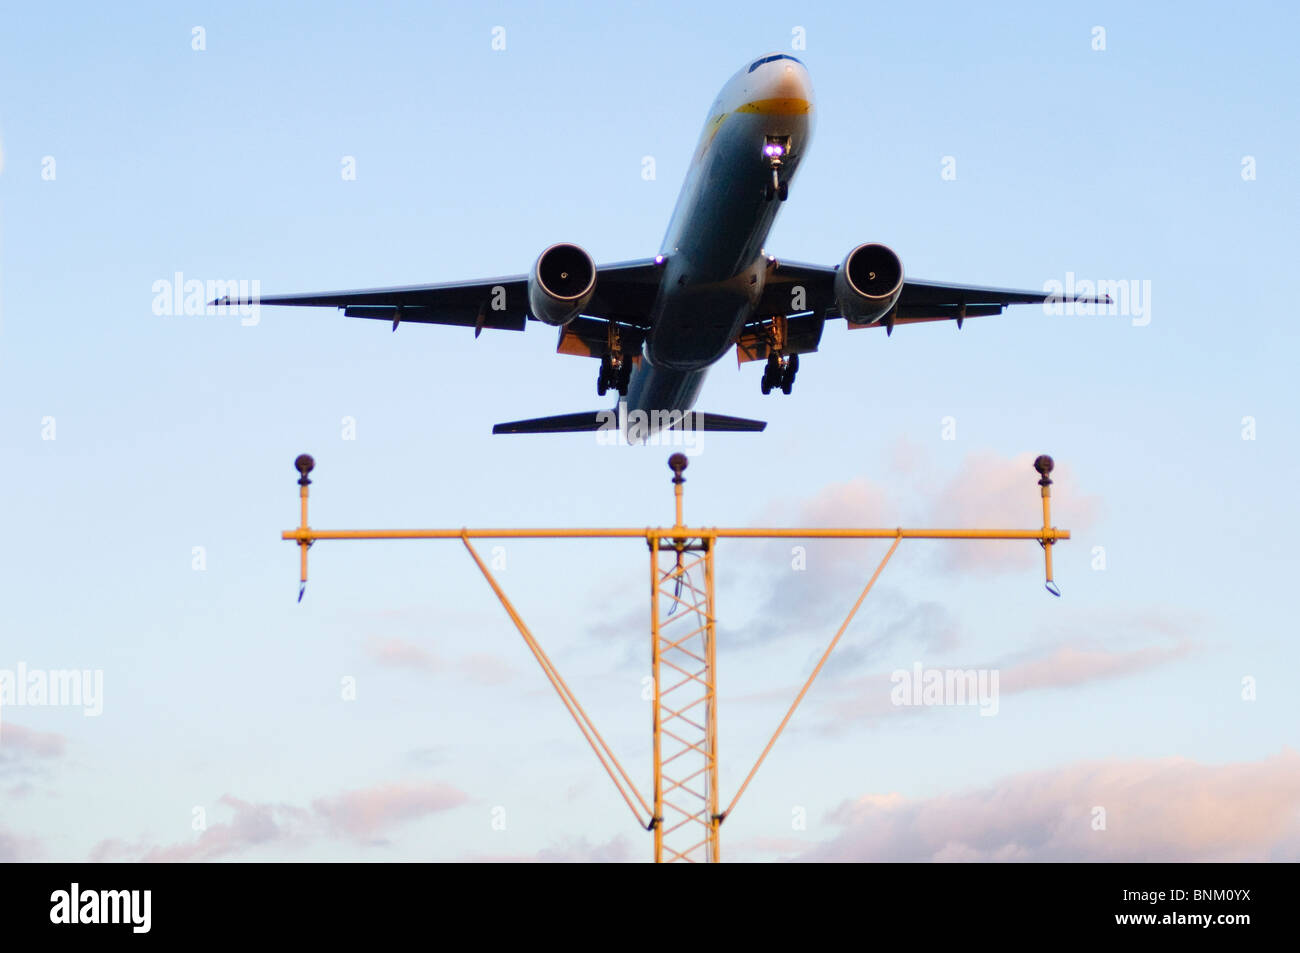 Boeing 777 operated by Jet Airways on approach for landing at London Heathrow Airport, UK. Stock Photo